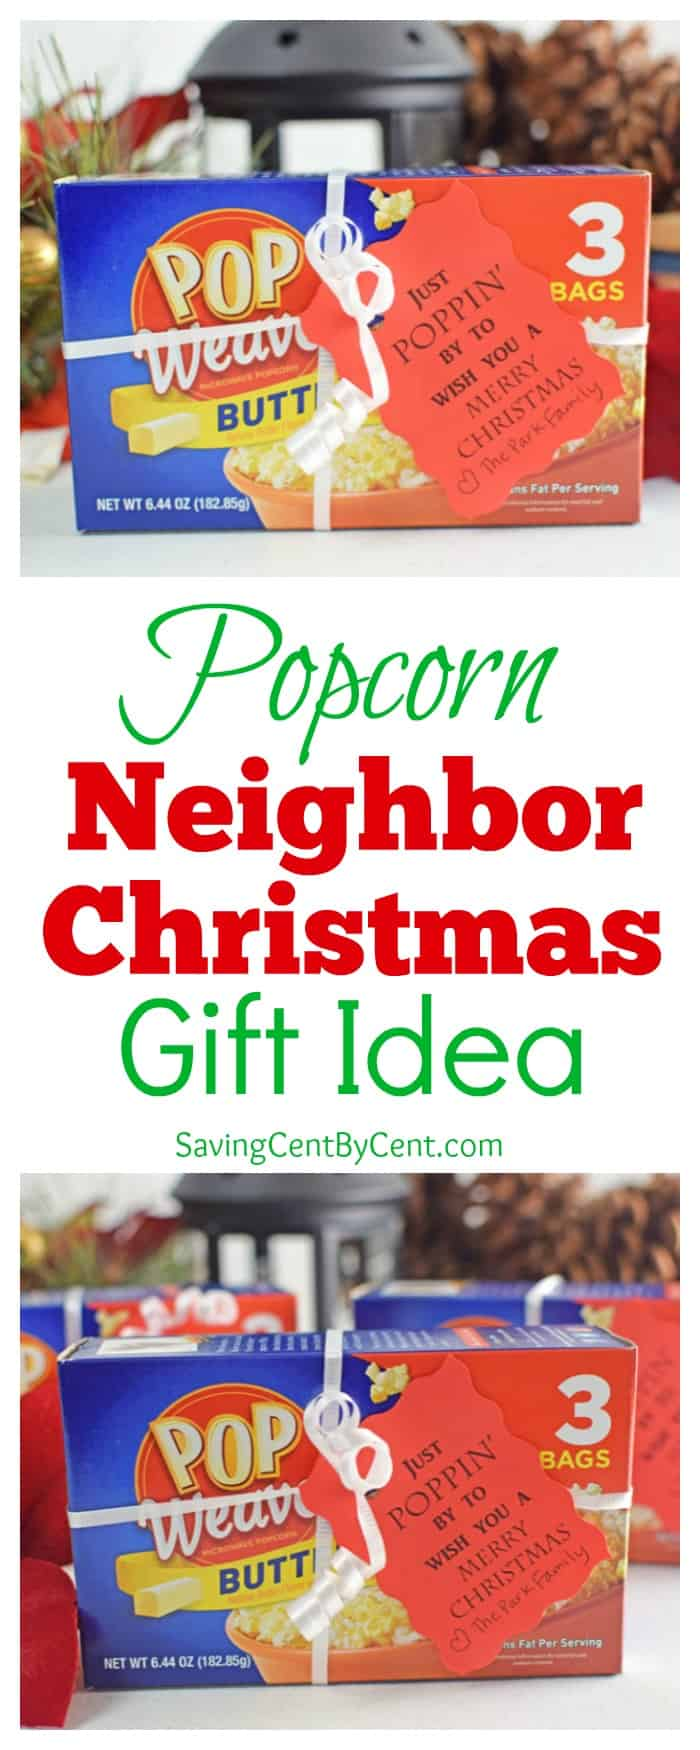 Popcorn Neighbor Christmas Gift Idea